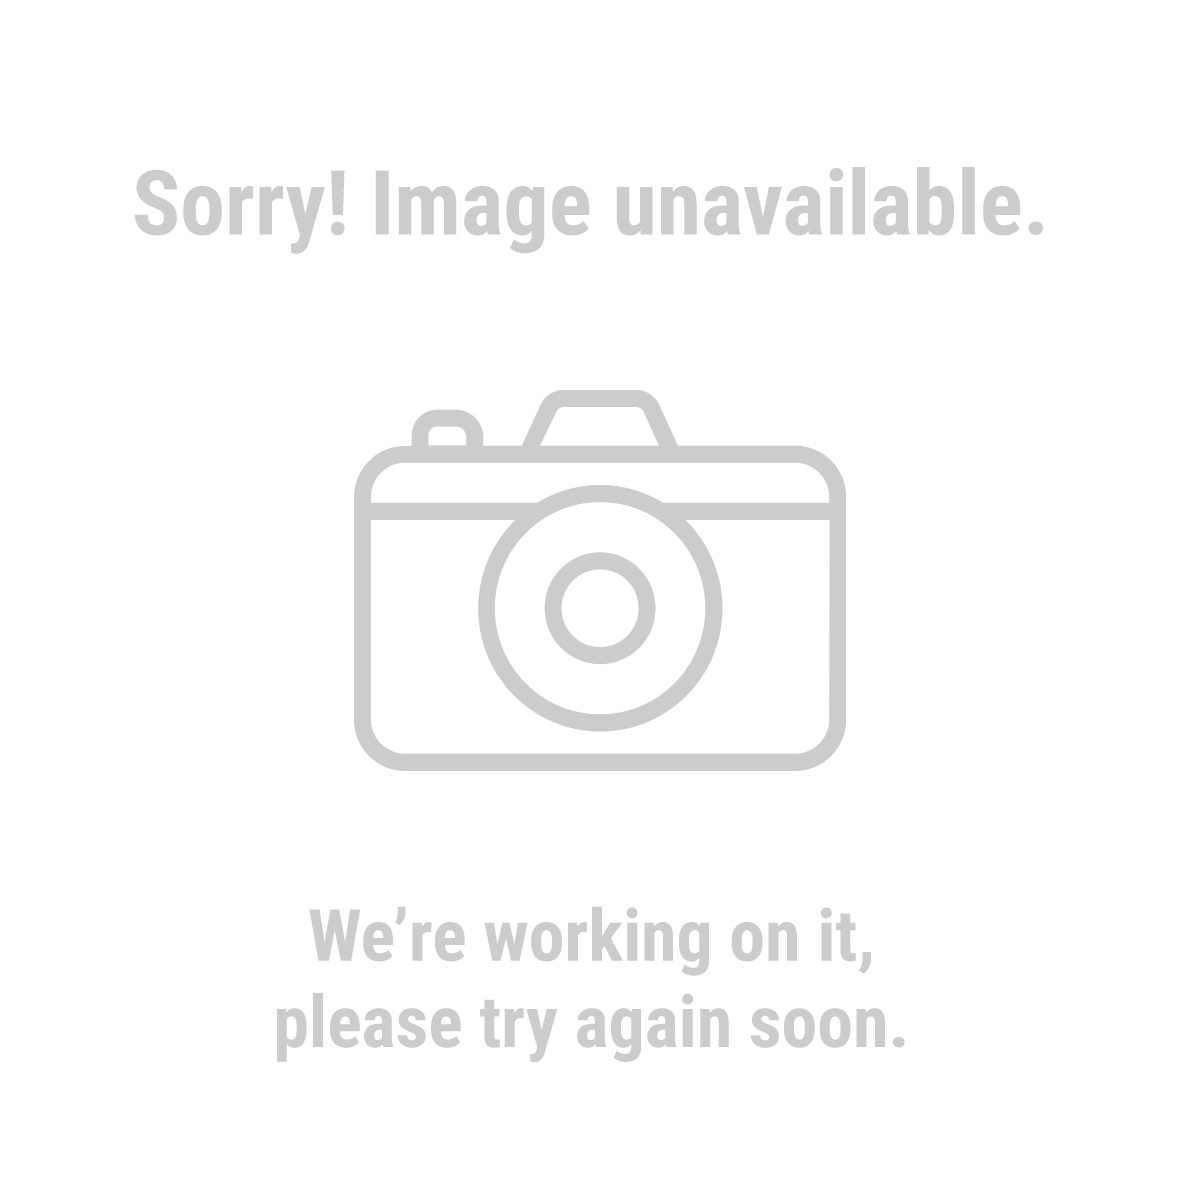 Chicago Electric Welding 61792 165 Amp-DC, 240 Volt, Inverter TIG/Stick Welder